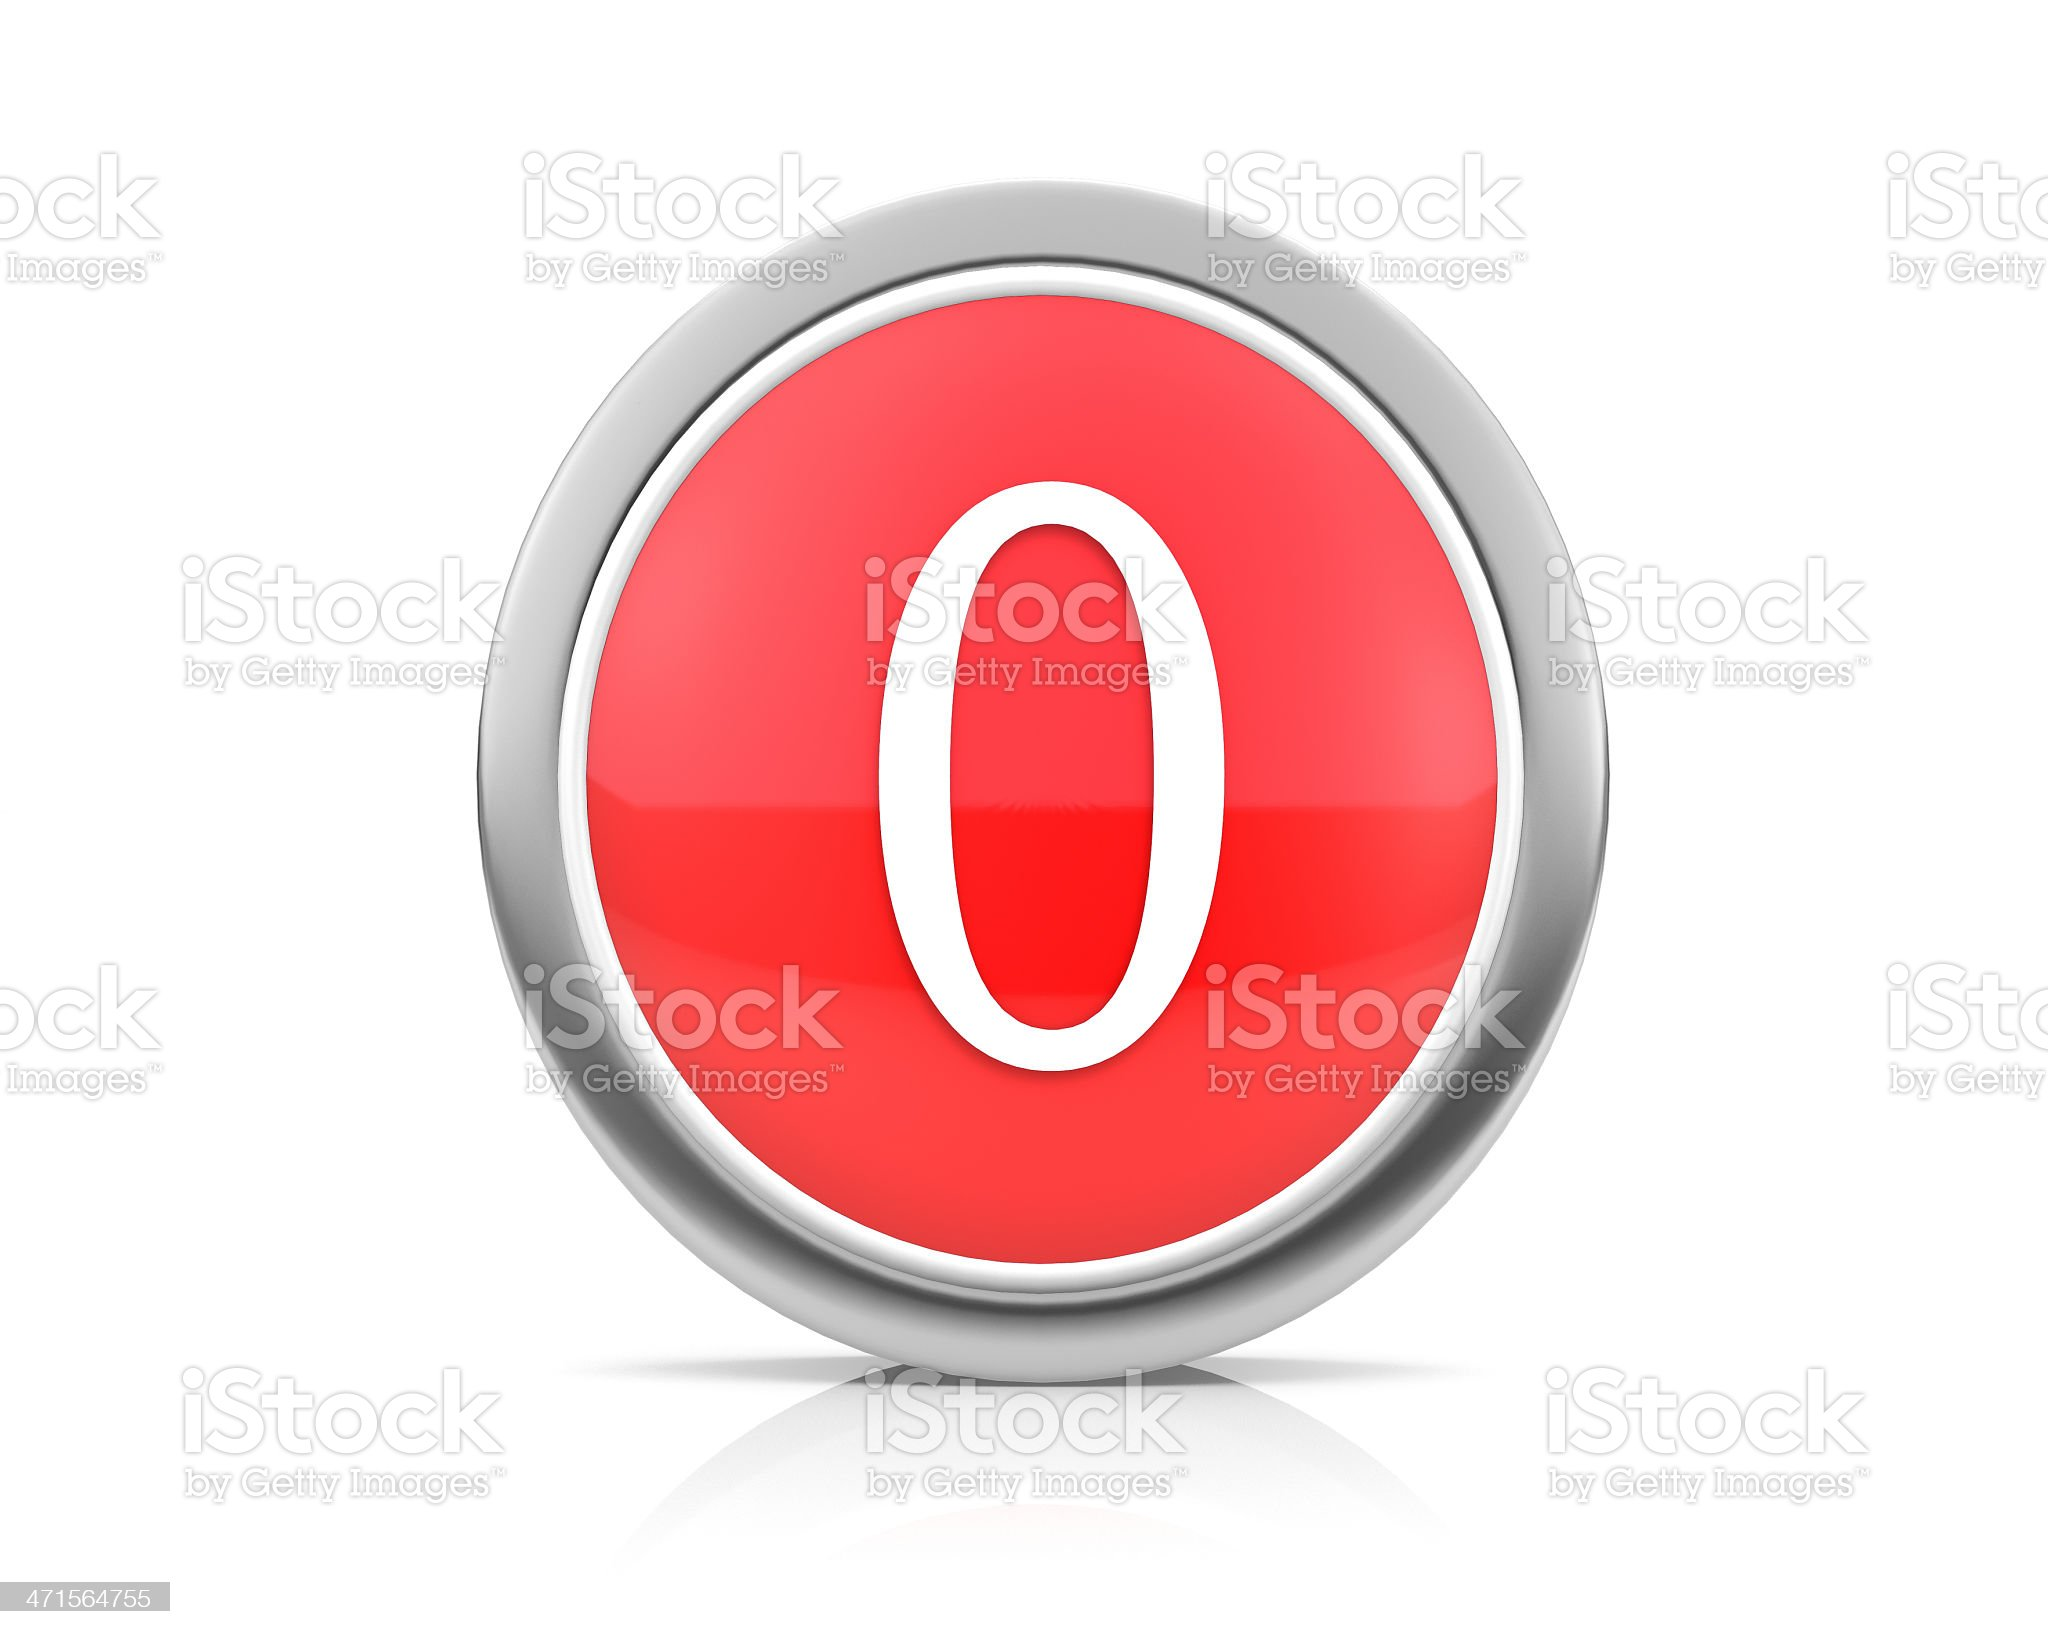 number0 royalty-free stock photo